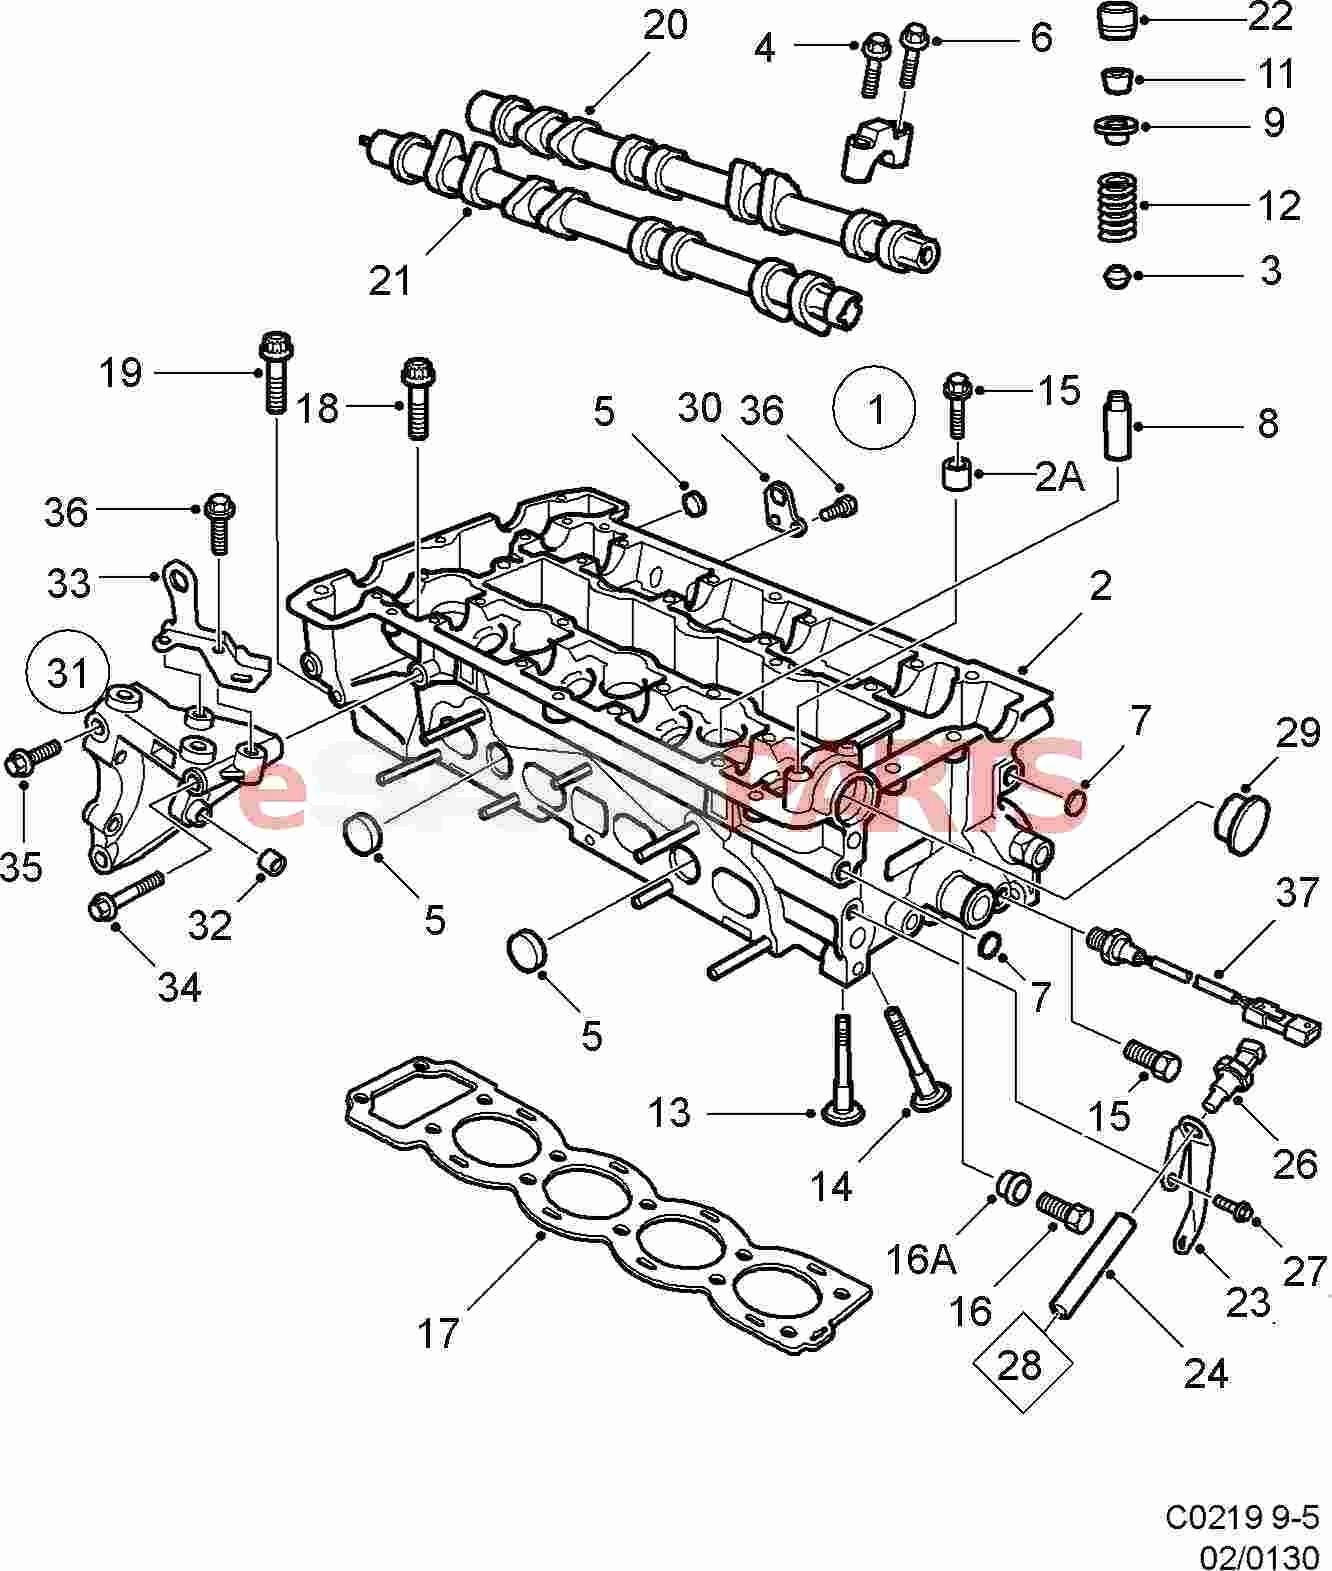 2004 ford explorer parts diagram 2004 ford explorer